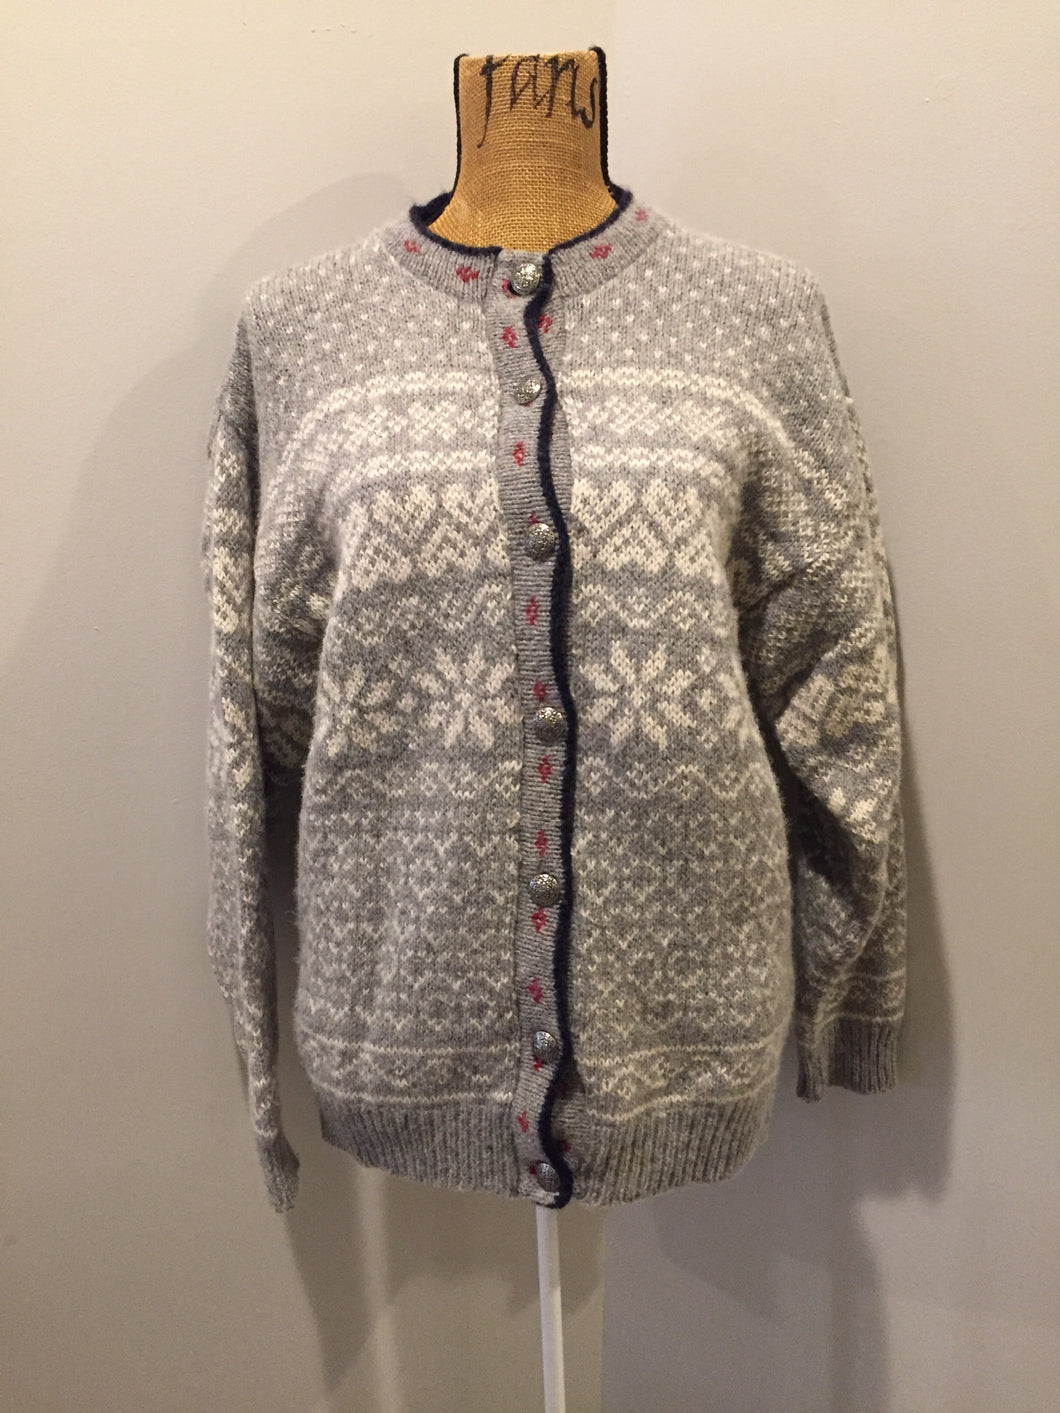 LL BEAN nordic style wool cardigan in grey, white, blue and red with button closures. Made in the USA. Size large.